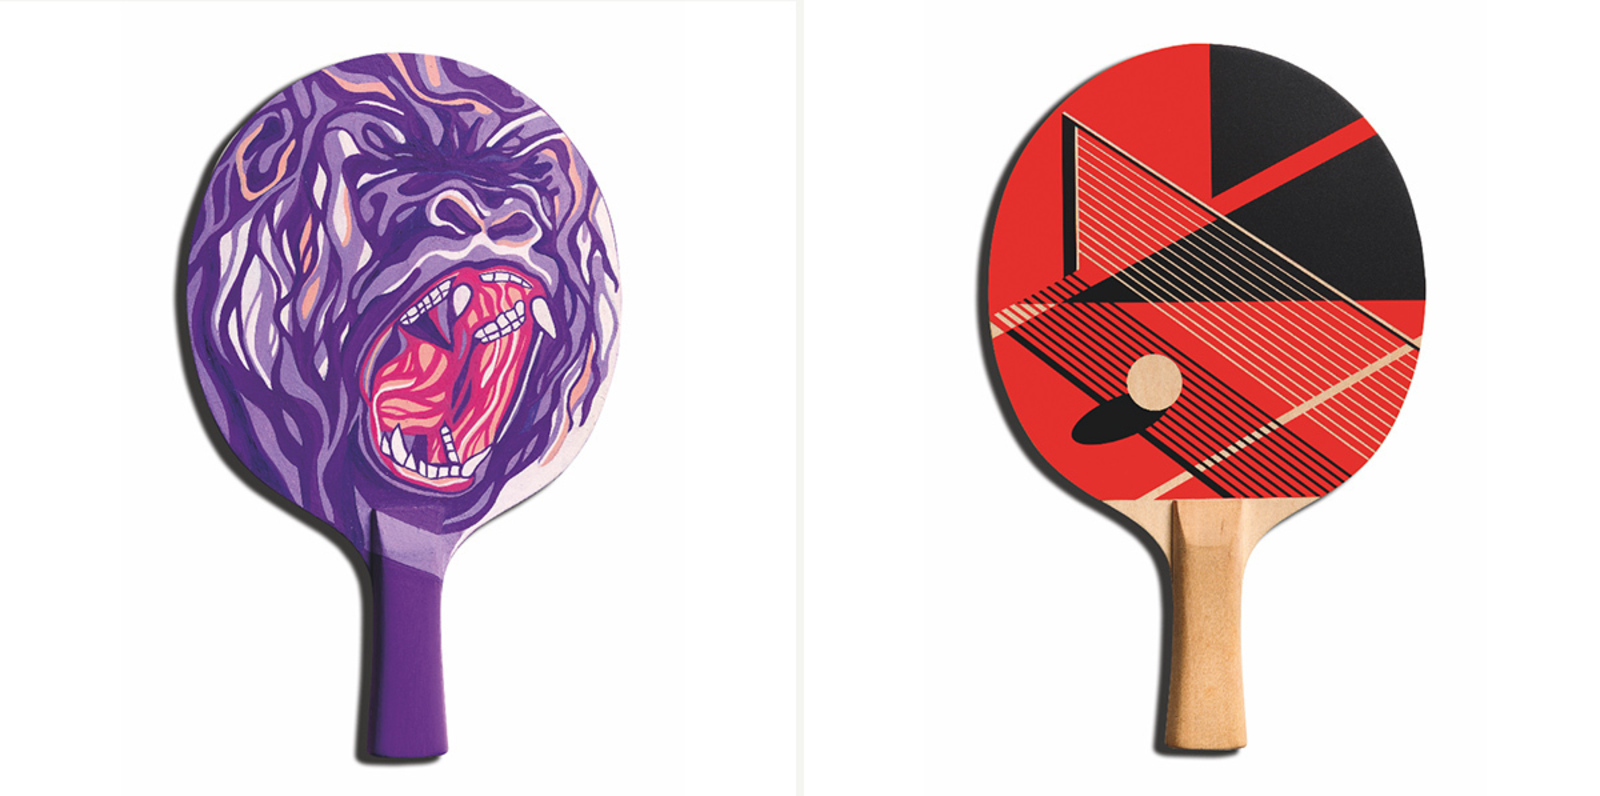 large_claudine-sullivan-malika-favre-illustrators-ping-pong-paddles